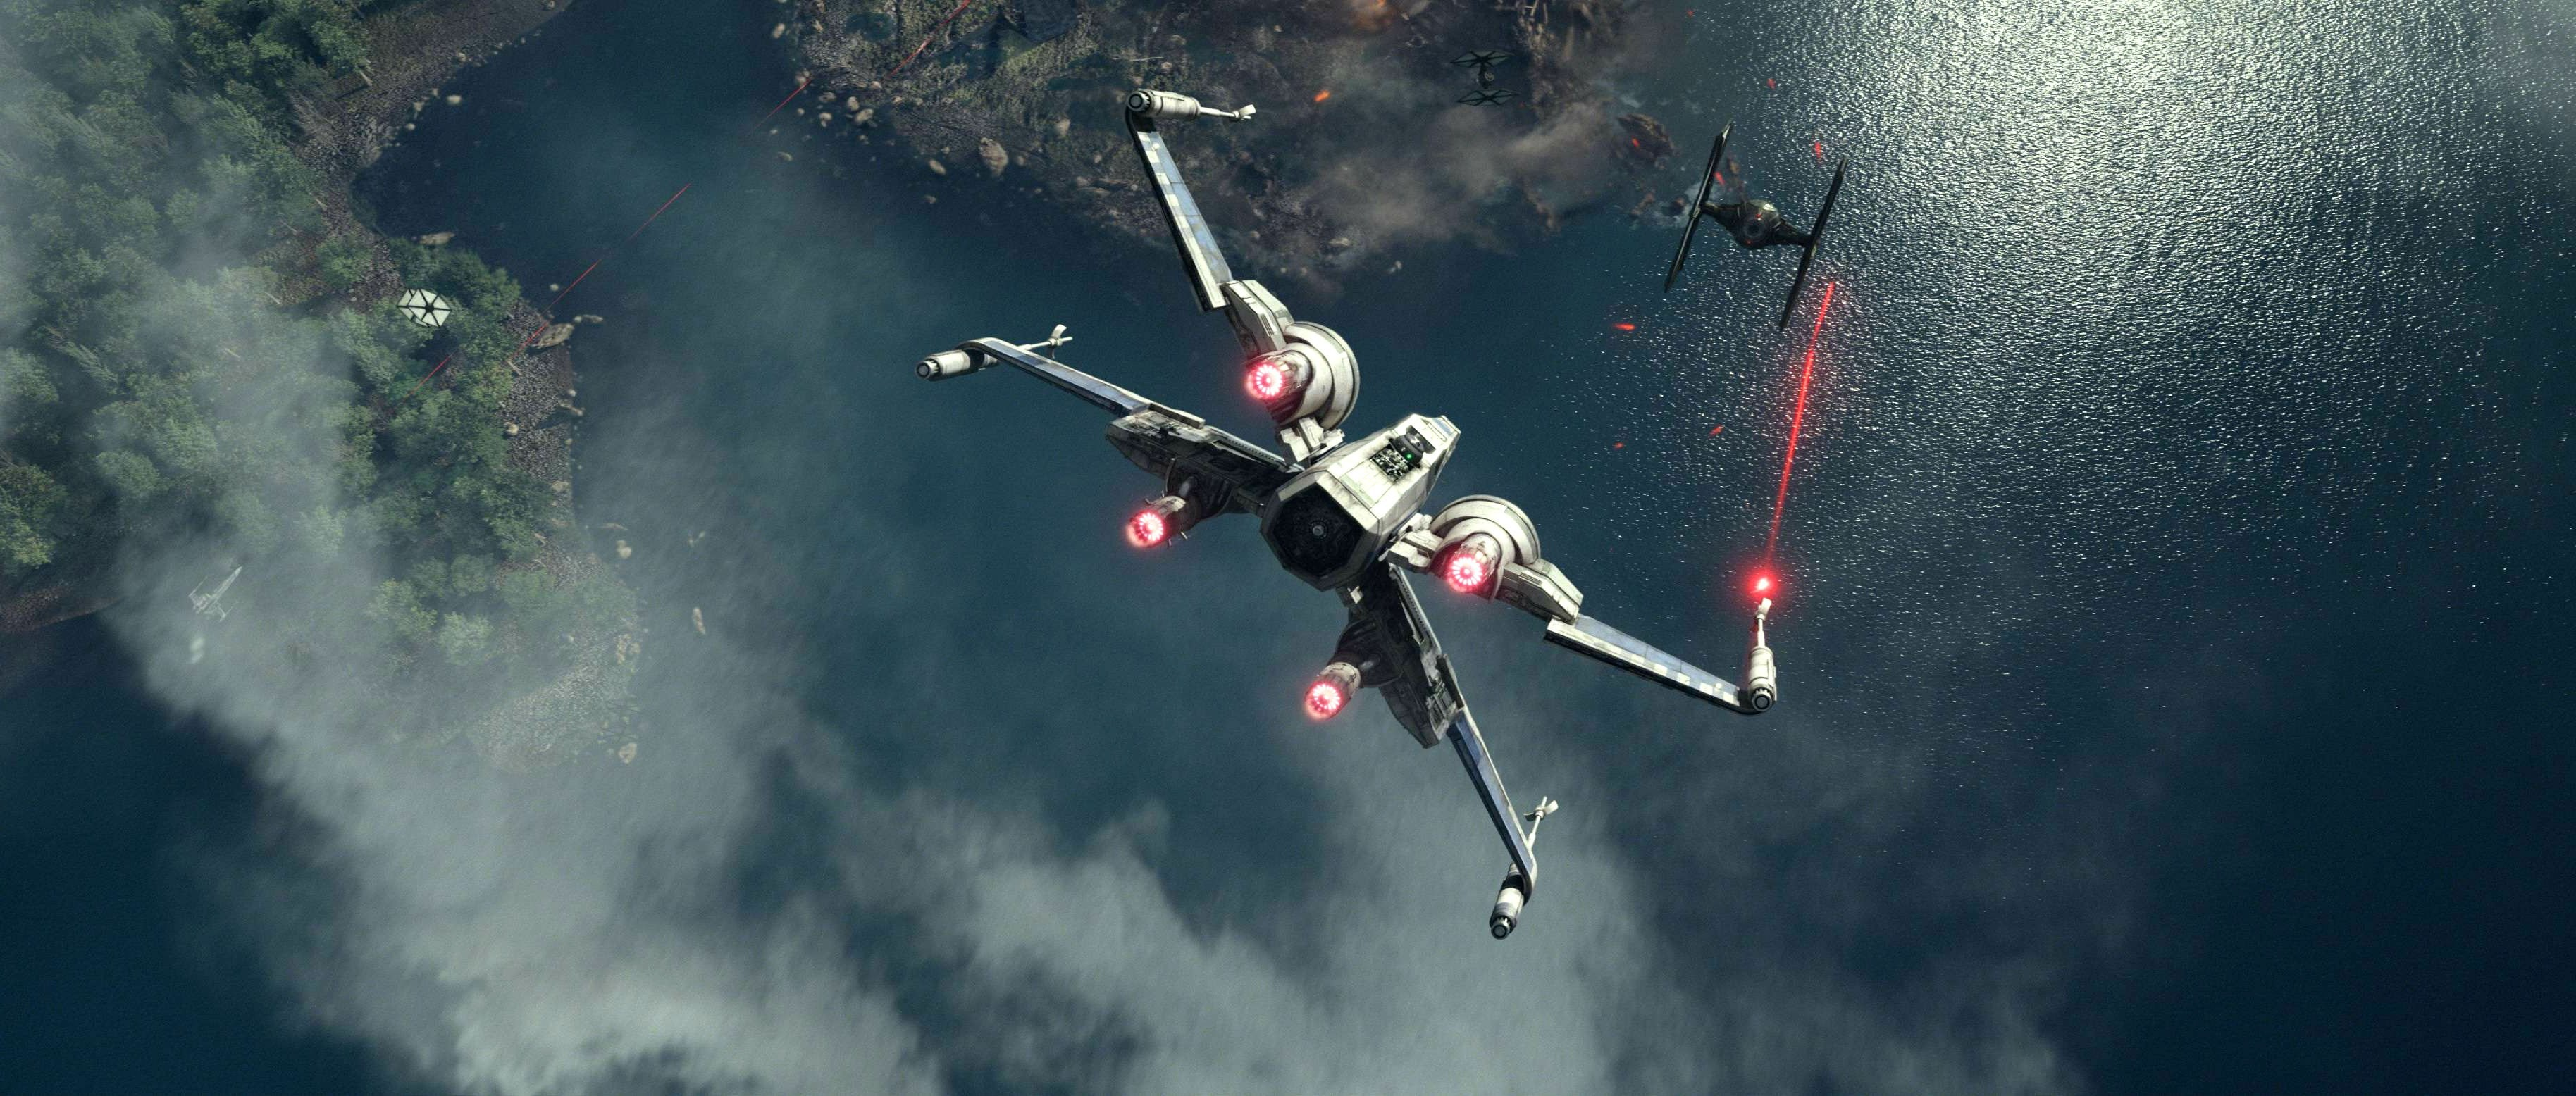 3656x1556 STAR WARS FORCE AWAKENS sci-fi futuristic disney 1star-wars-force-awakens  action adventure spaceship battle wallpaper |  | 821384 |  WallpaperUP